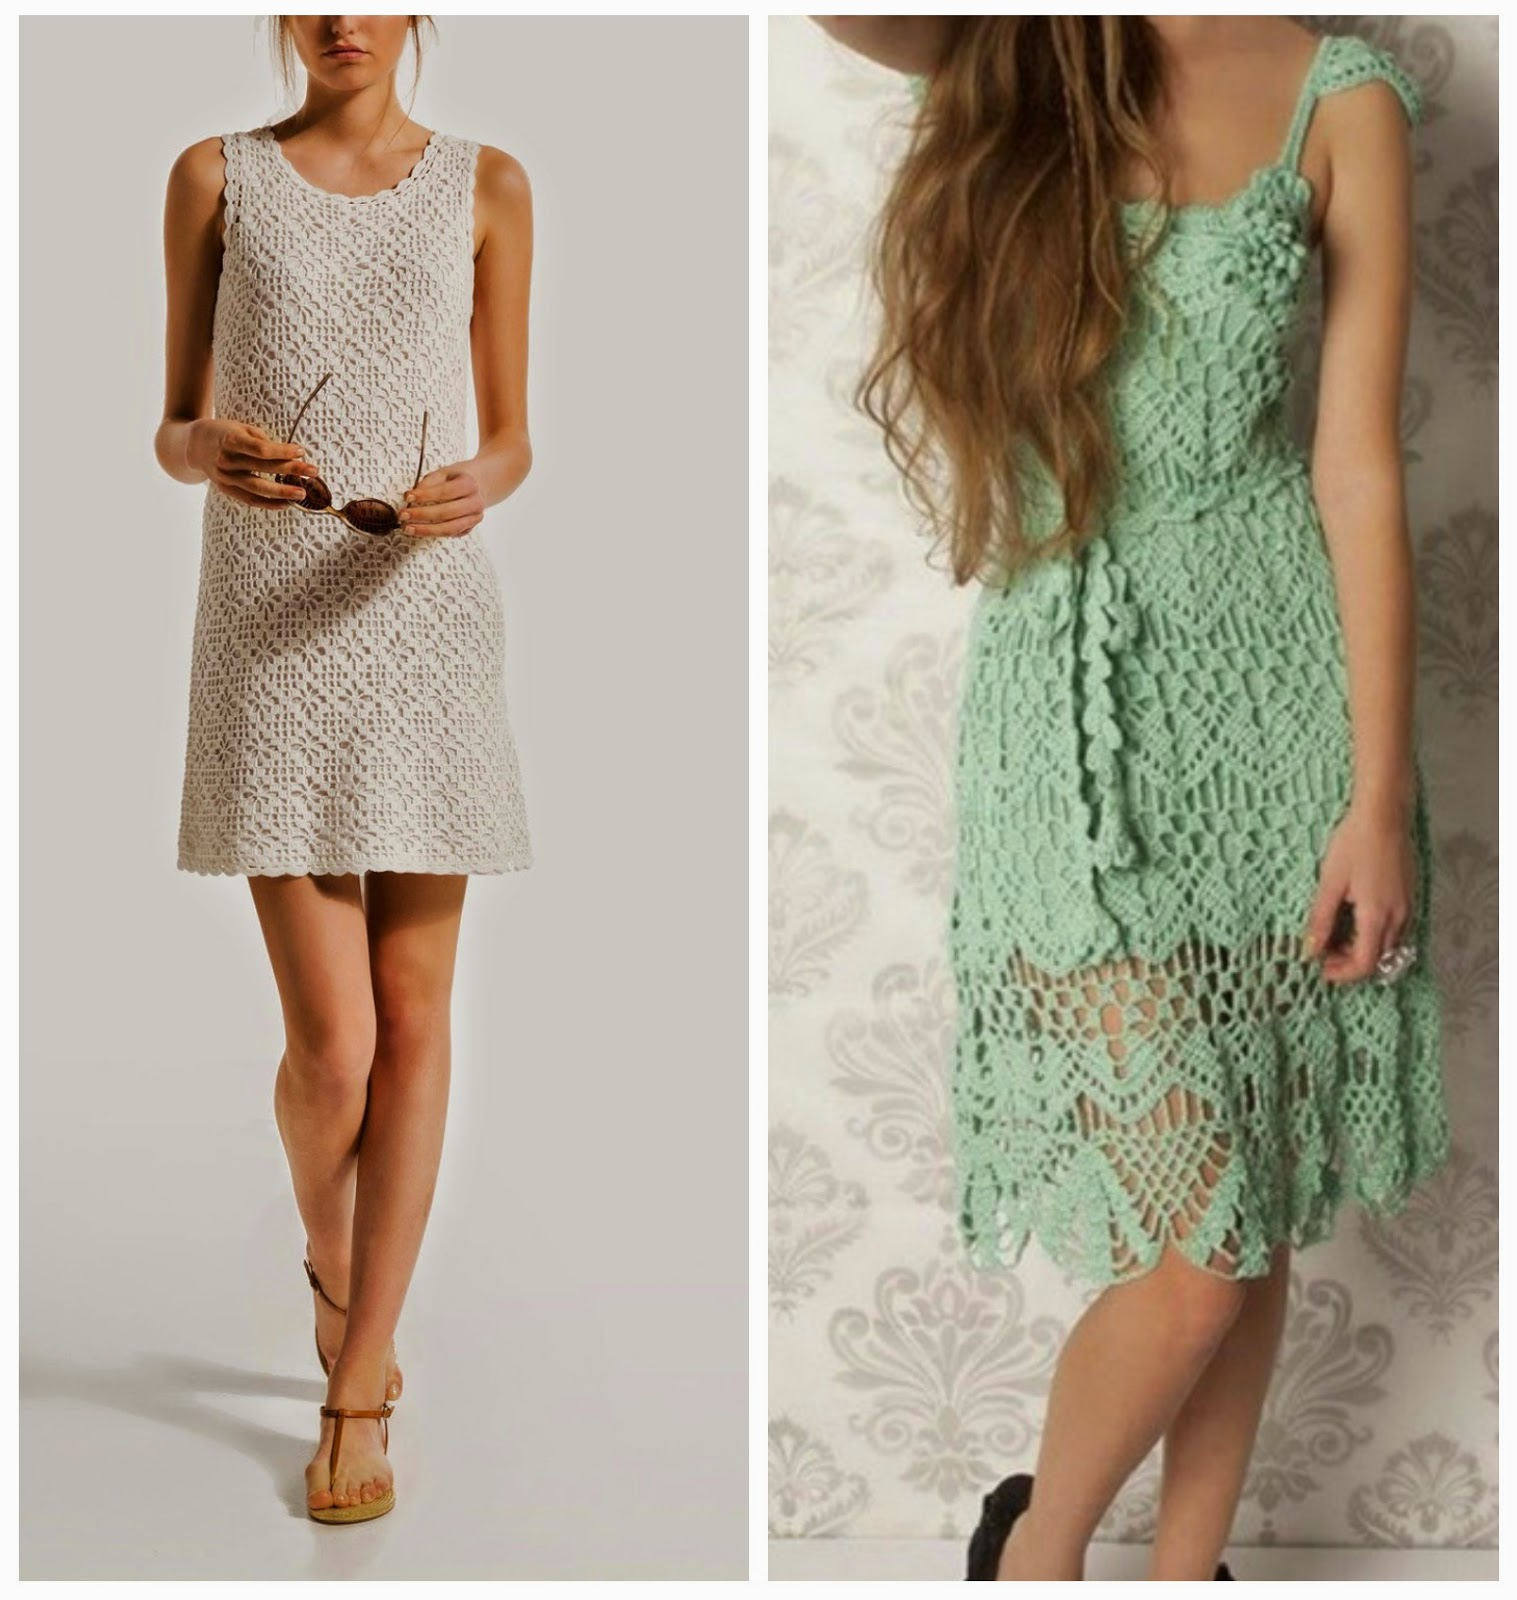 Crochet Patterns Free Dress : Little Treasures: 15 Crochet Dresses - free patterns and ...